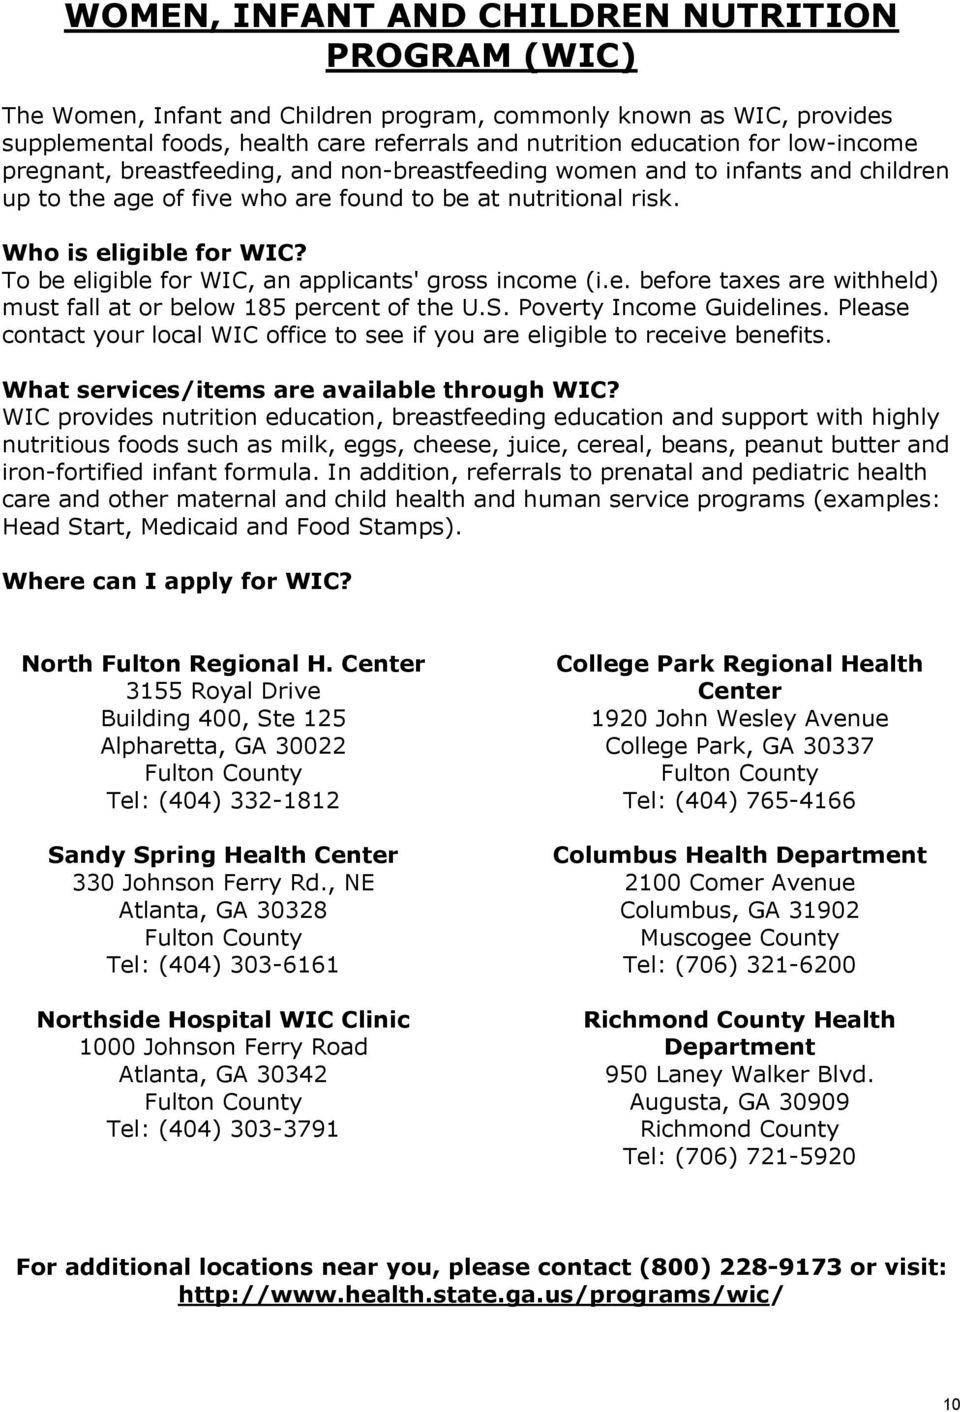 To be eligible for WIC, an applicants' gross income (i.e. before taxes are withheld) must fall at or below 185 percent of the U.S. Poverty Income Guidelines.